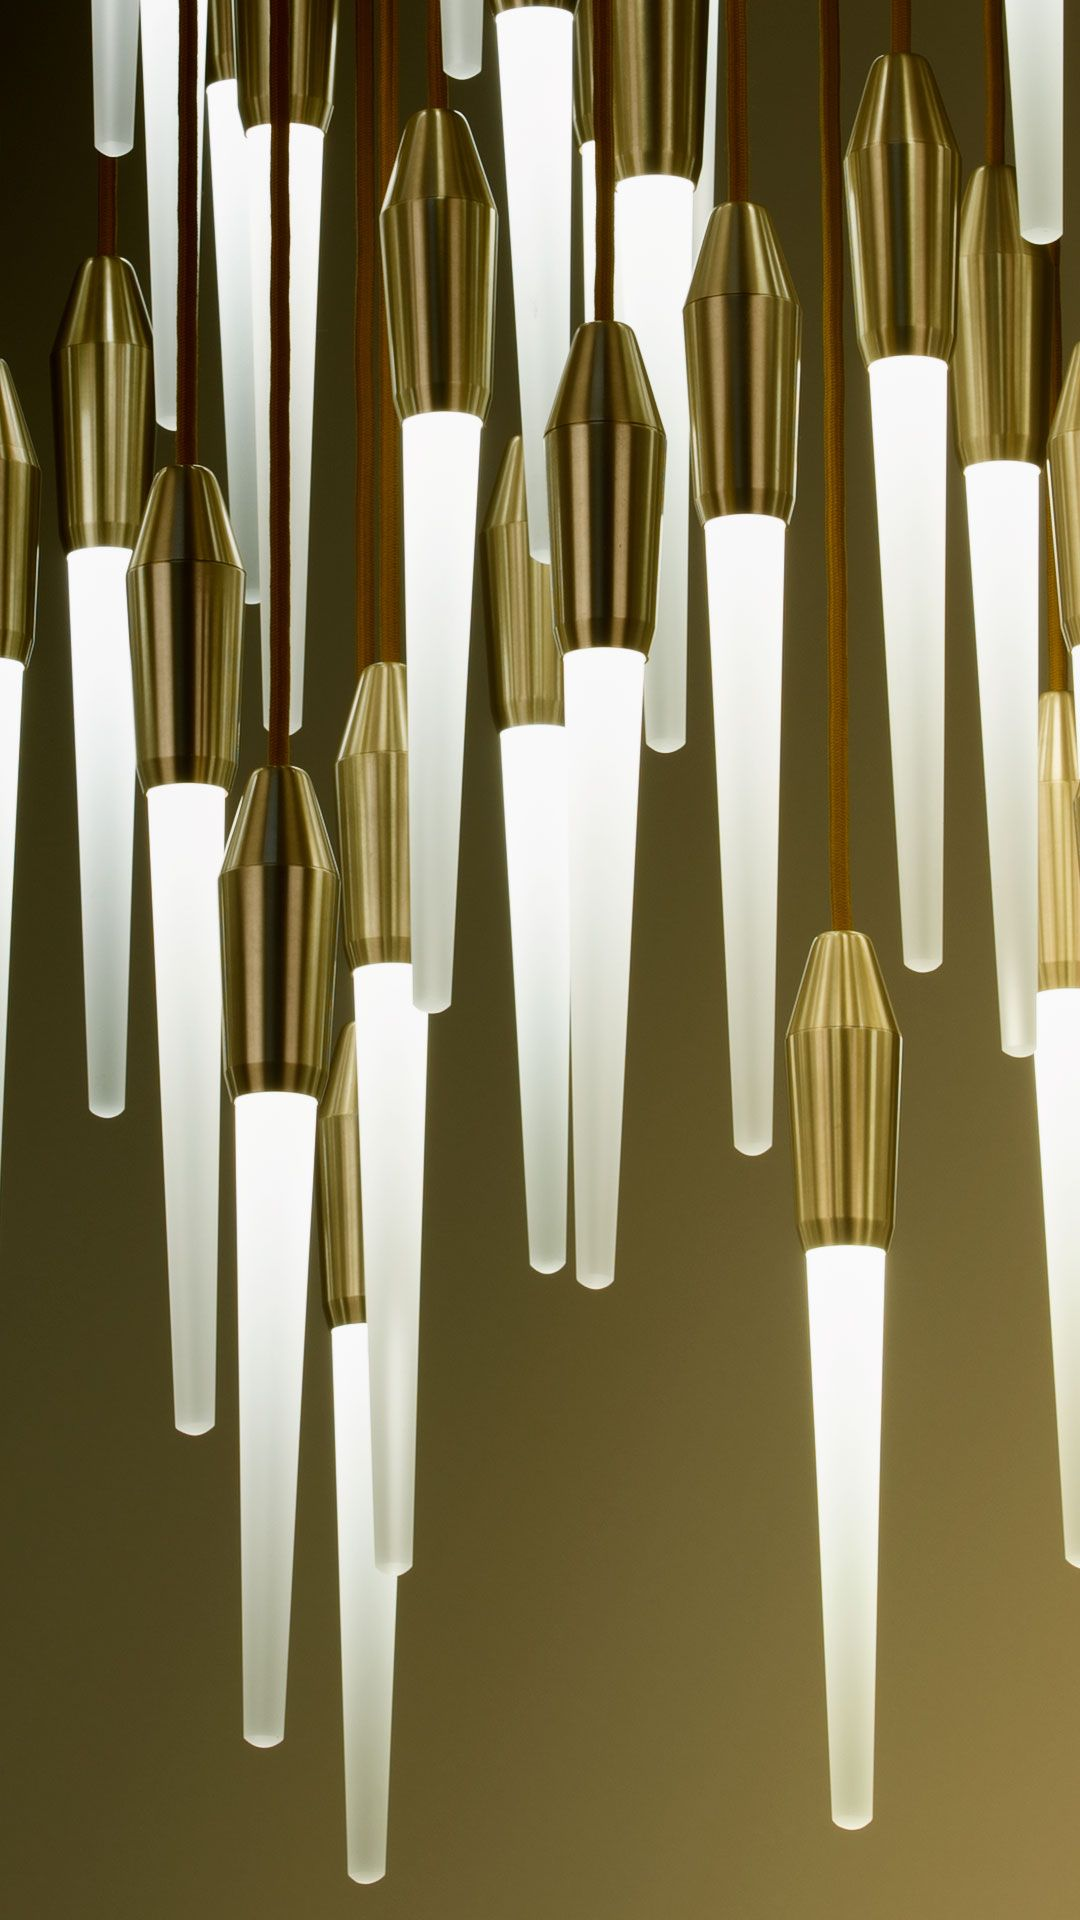 Icicle 1920 vert 3g light lys pinterest lights lamp creative shape in lighting design arubaitofo Image collections